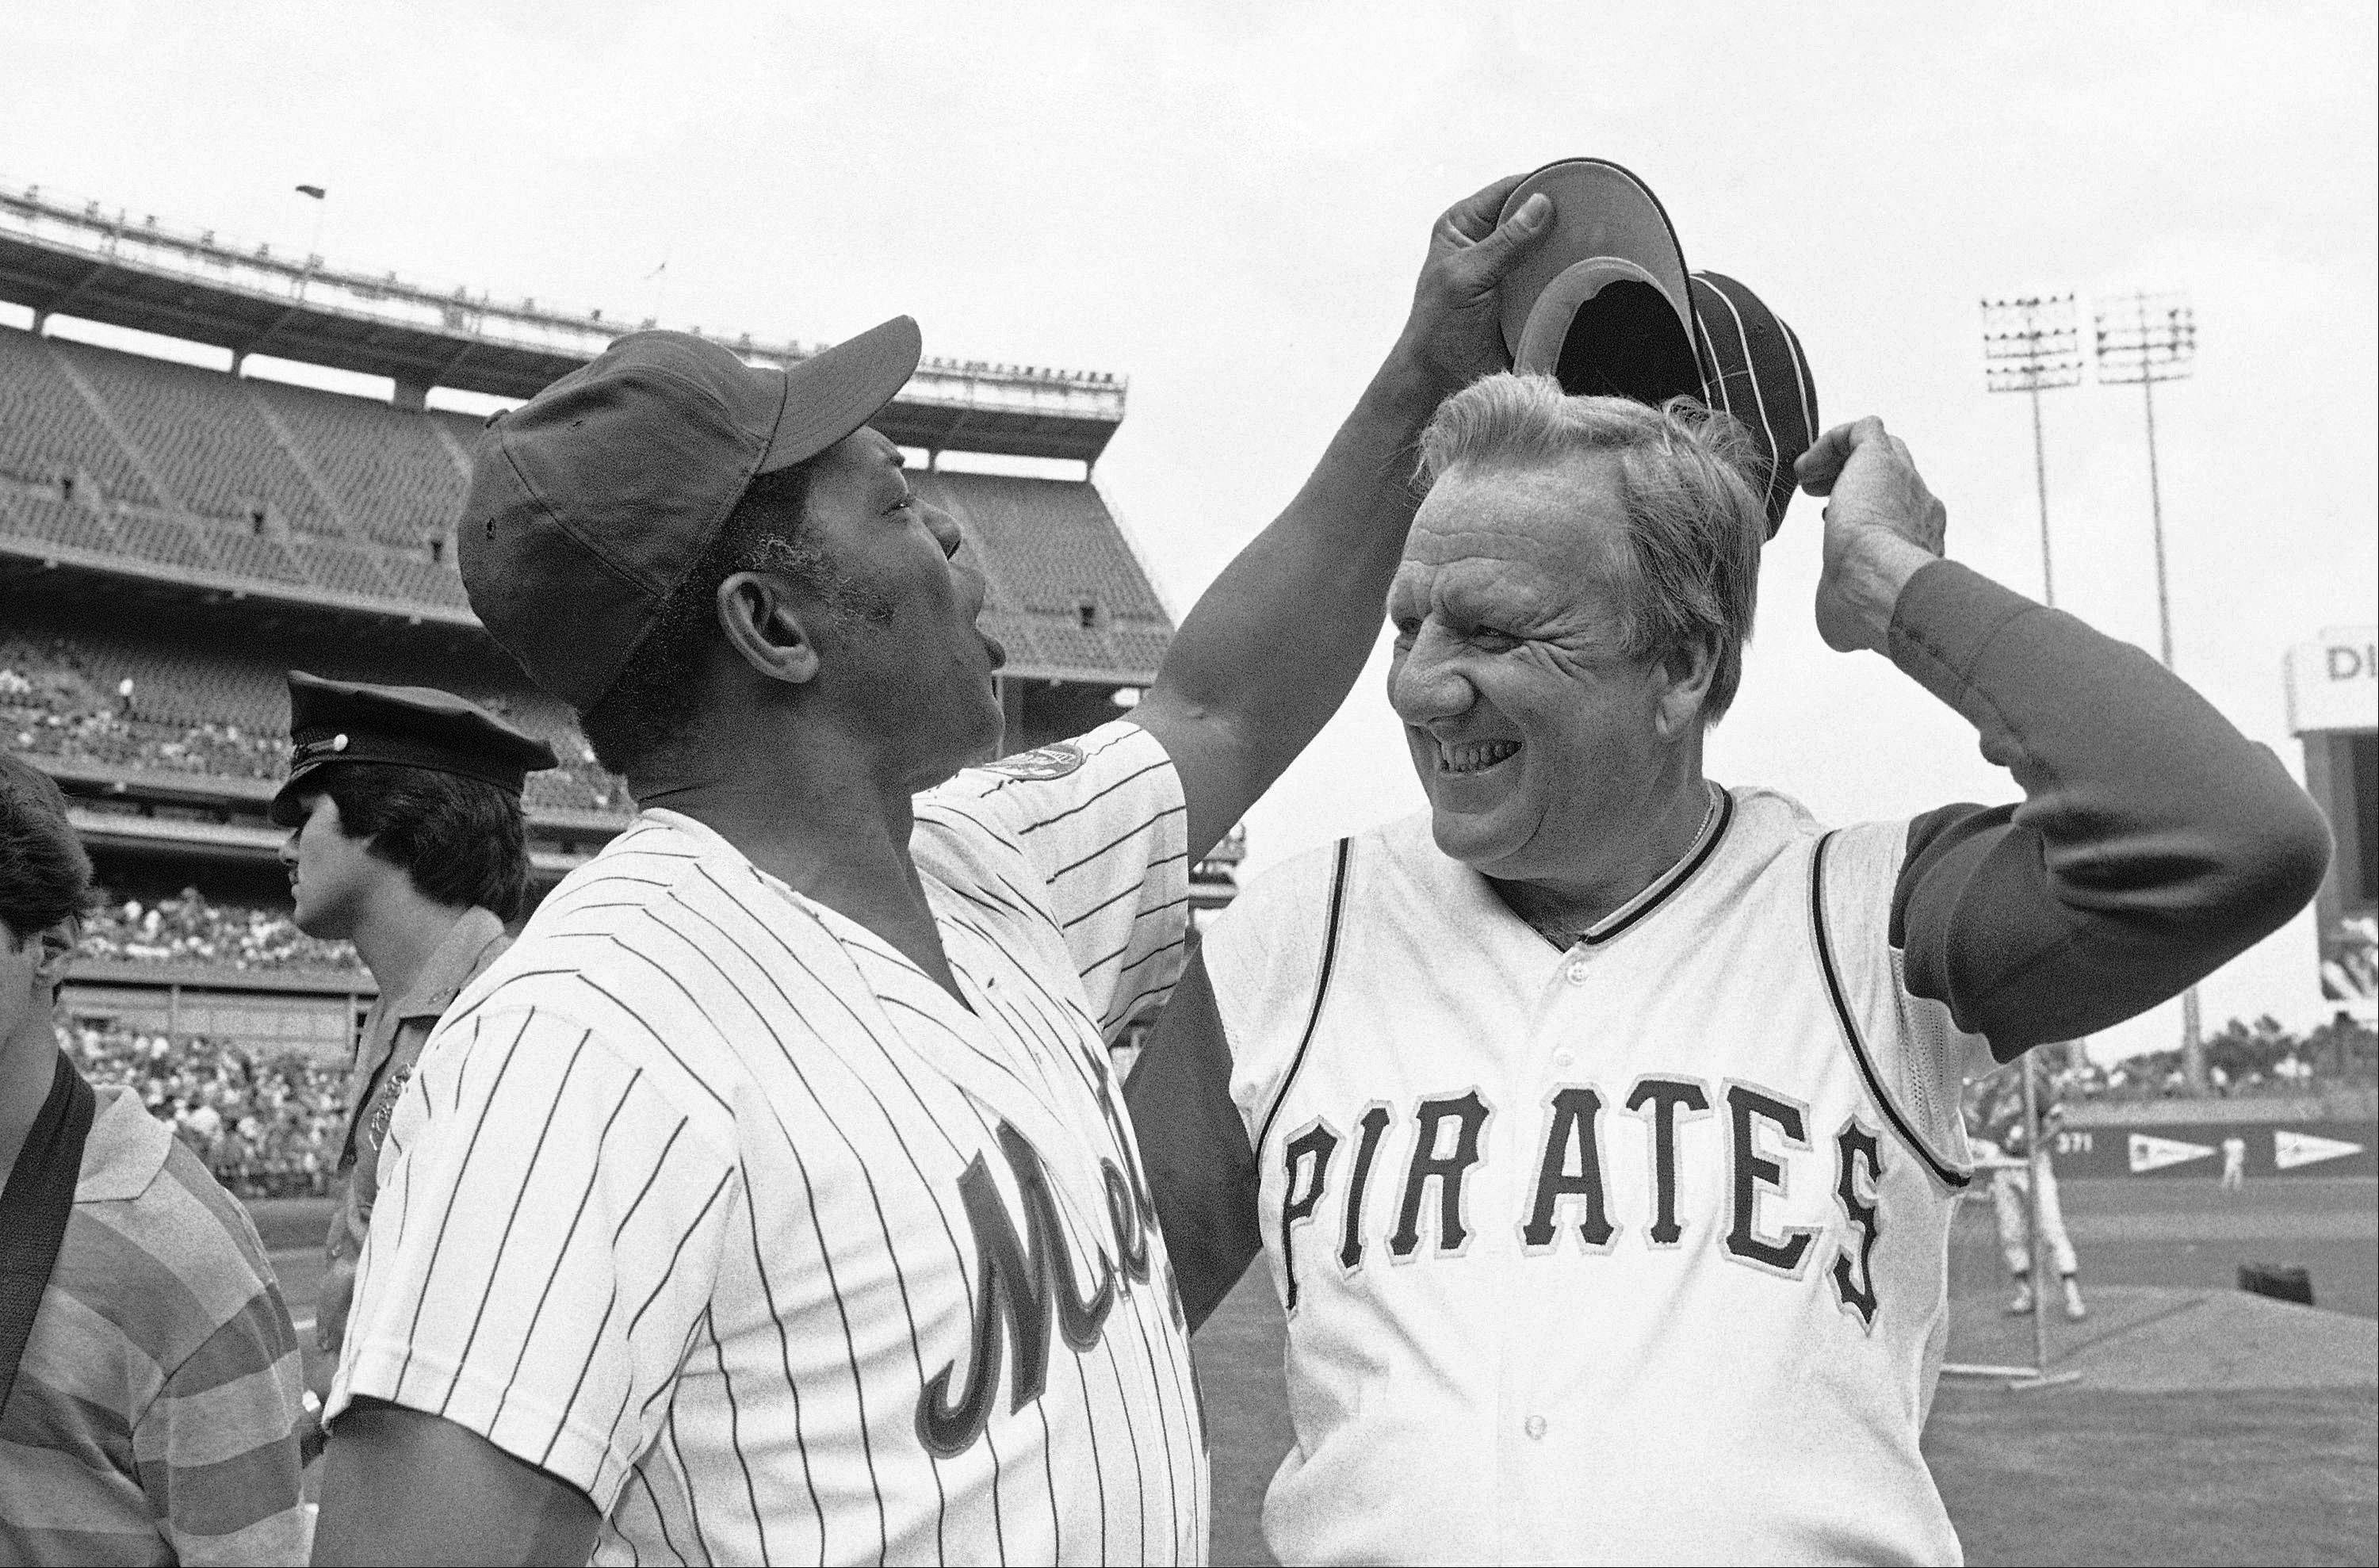 Willie Mays tries to get Ralph Kiner's hat as the two Hall of Famers pose for pictures before the start of Old Timers Day game at Shea Stadium in New York.